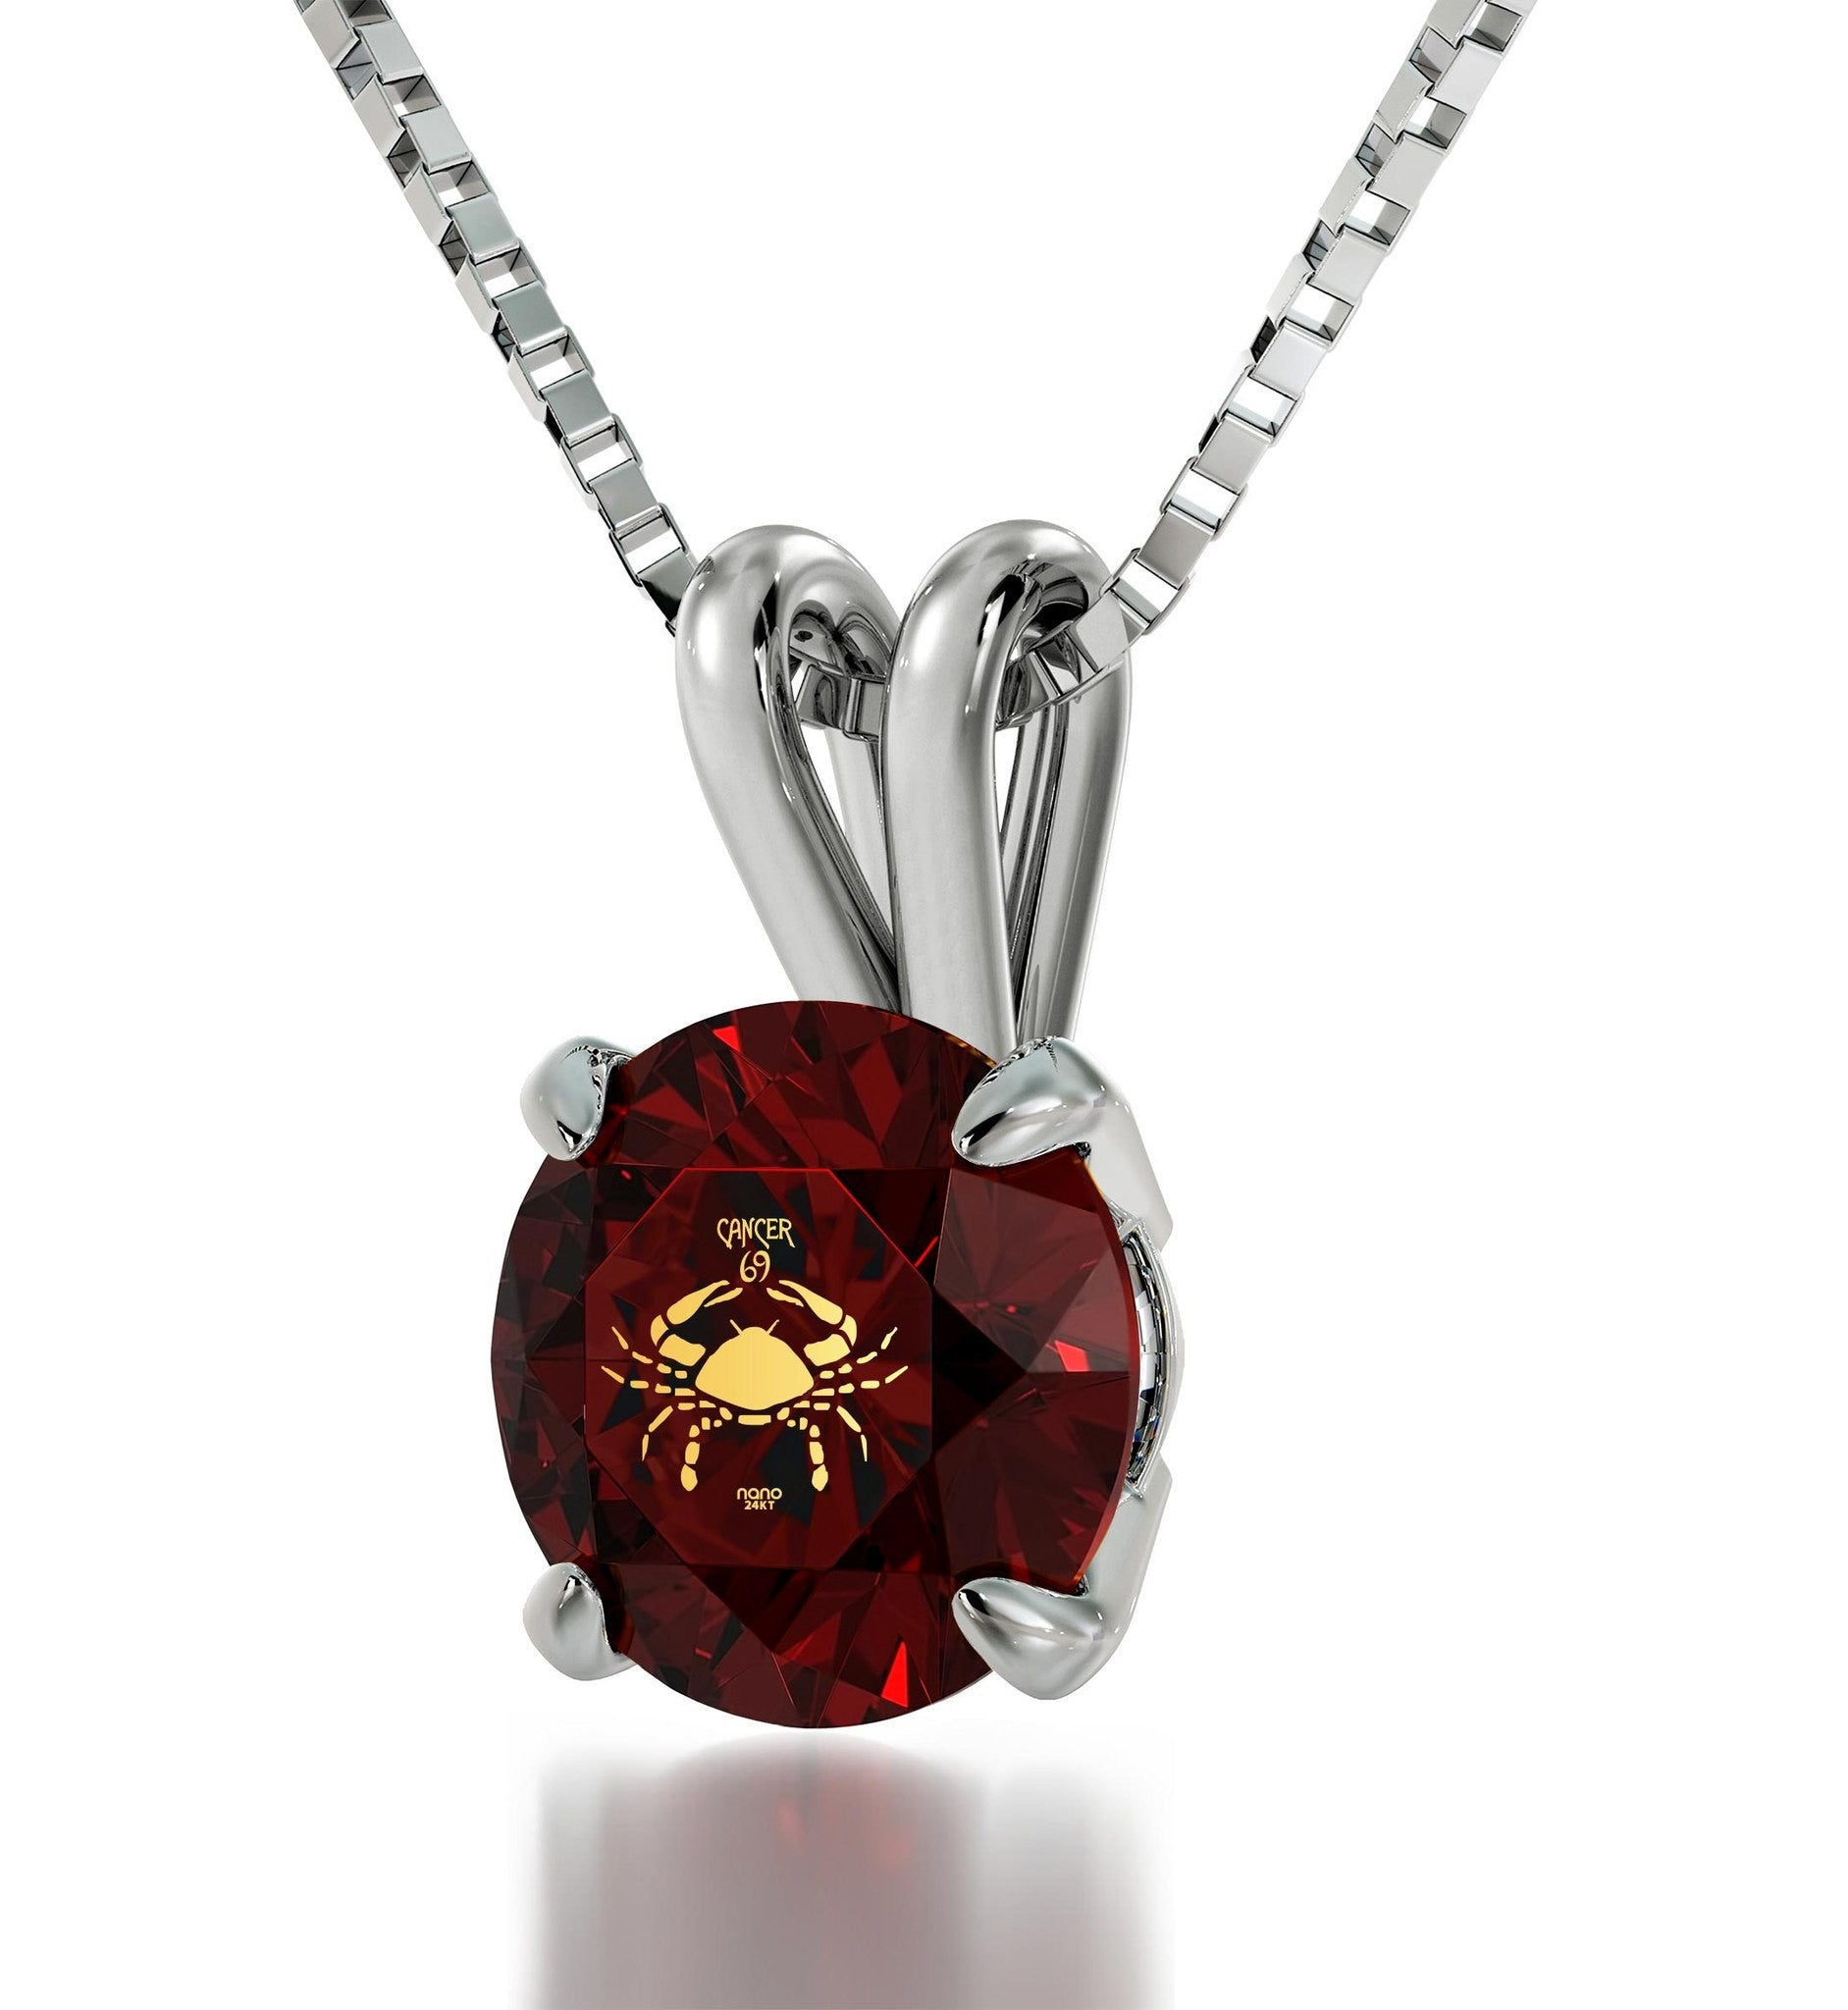 Cancer Sign Pendant CZ Crystal Stone What To Buy My Girlfriend For Christmas